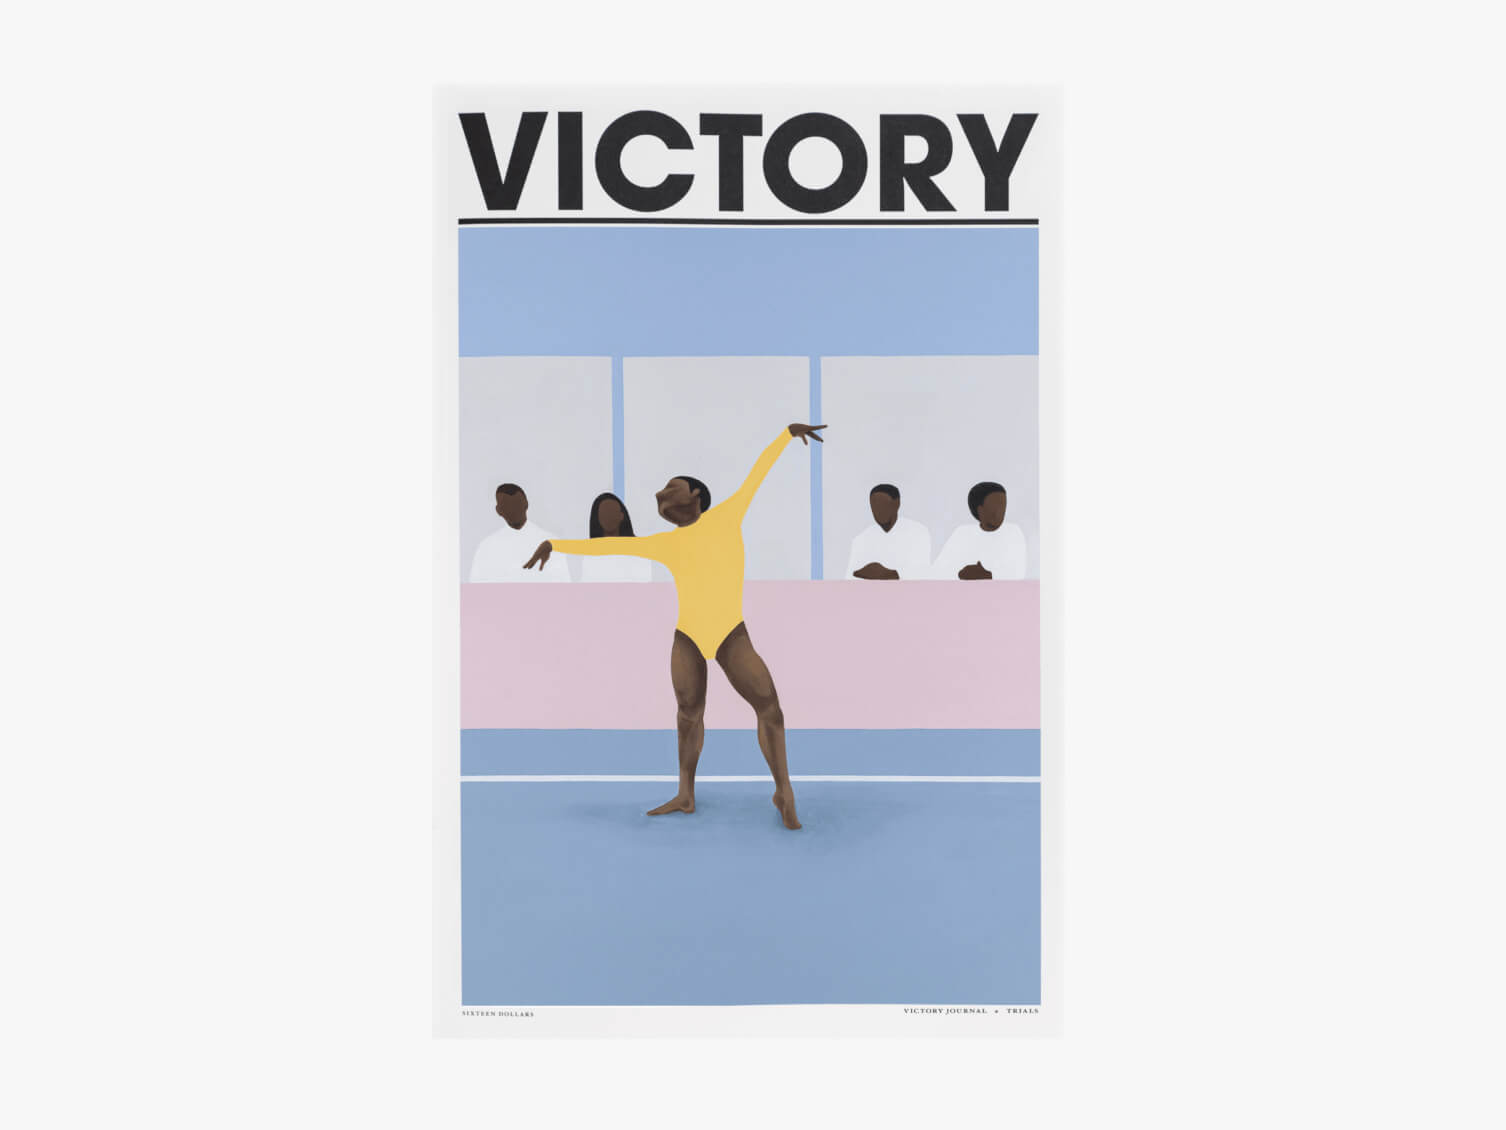 http newdistributionhouse.com image victory journal issue 18 025